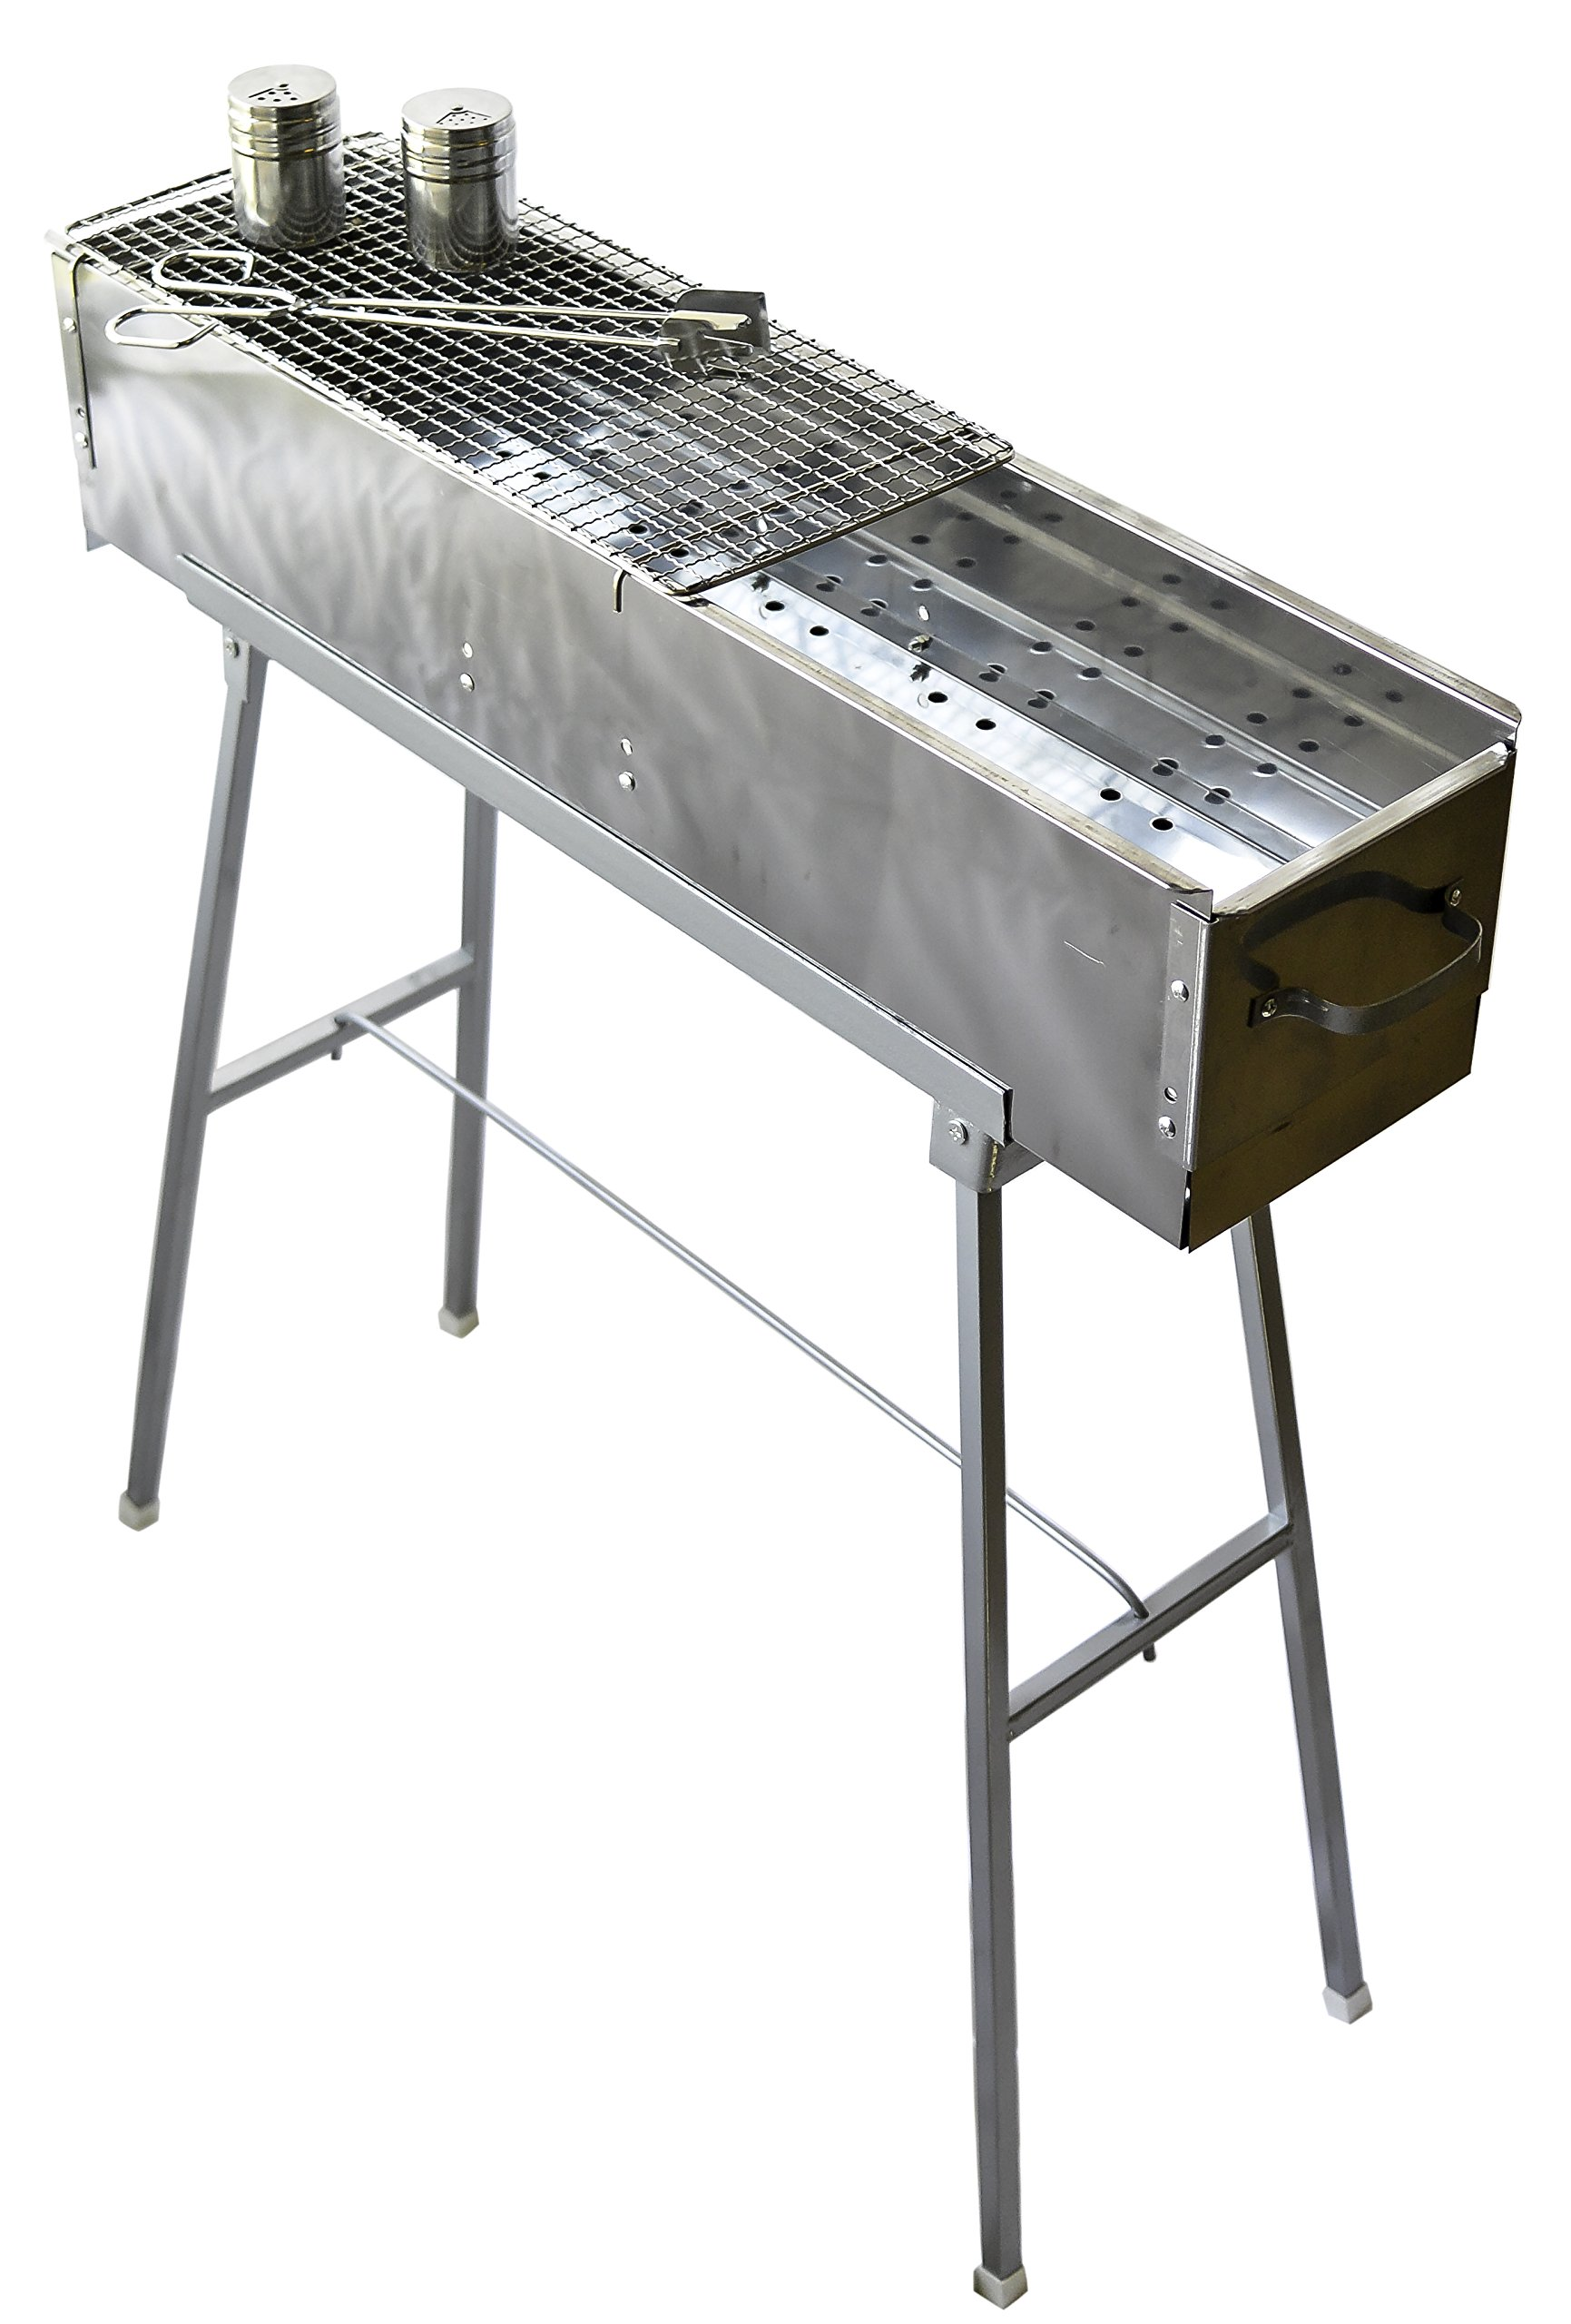 Party Griller 32'' Stainless Steel Charcoal Grill - Portable BBQ Grill, Yakitori Grill, Kebab Grill, Satay Grill. Makes Juicy Shish Kebab, Shashlik, Spiedini on the Skewer by PartyFairyBox